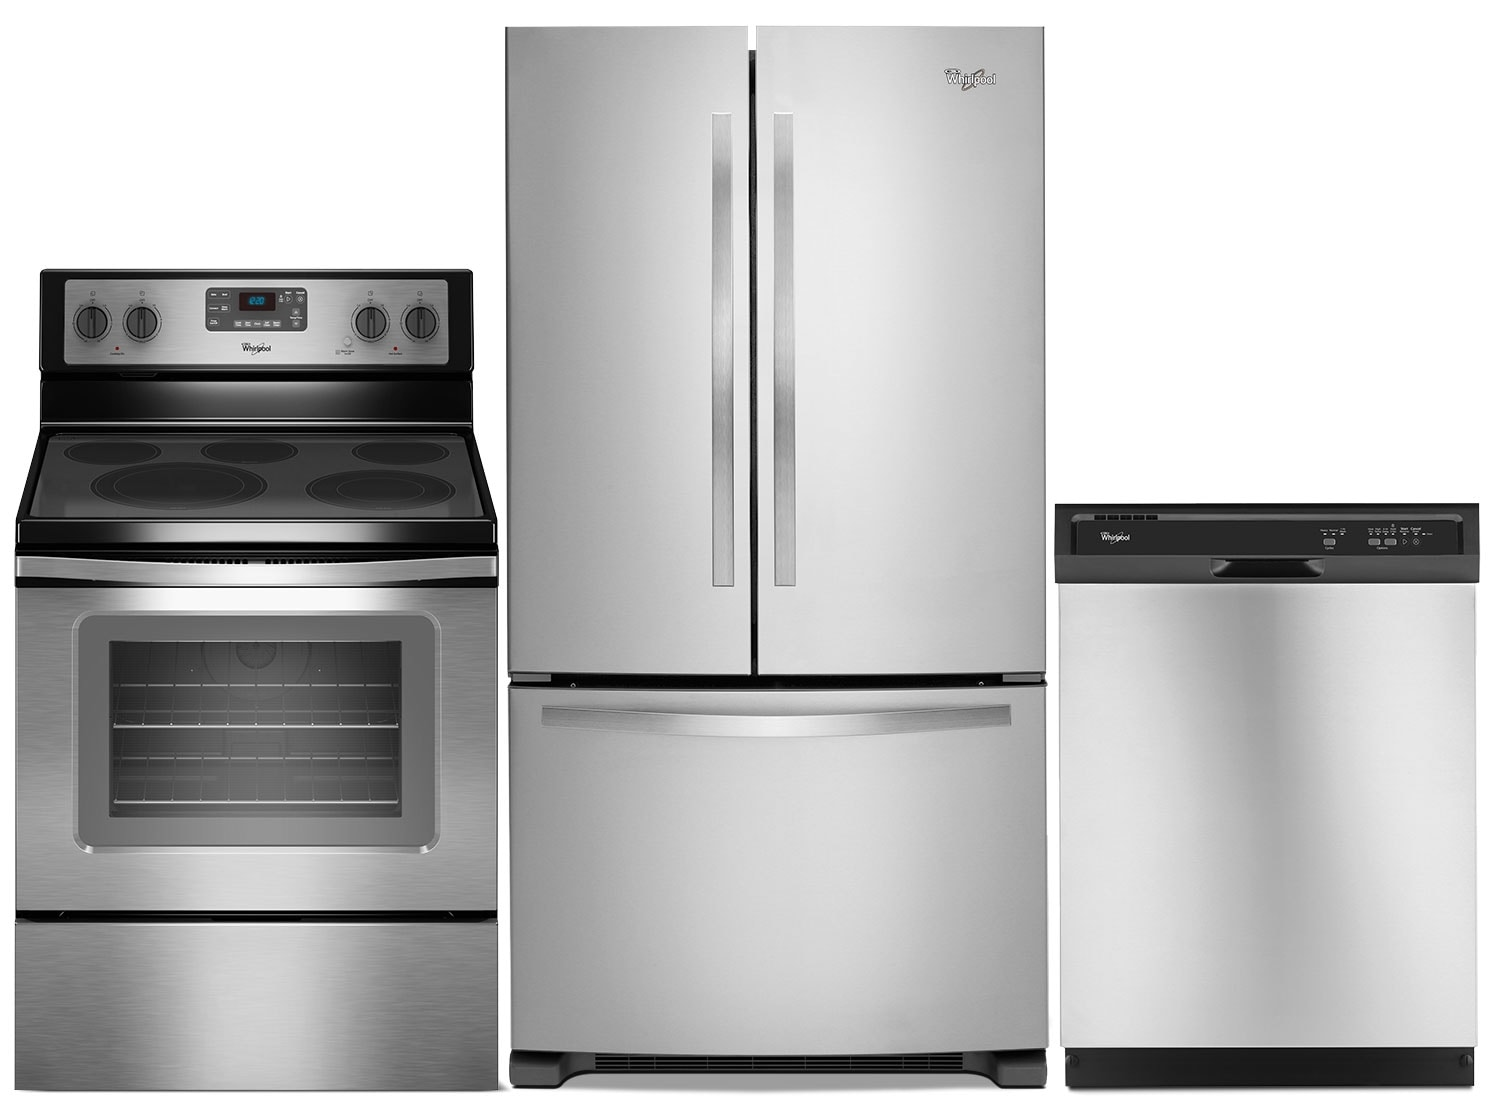 "Whirlpool 22 Cu. Ft. Refrigerator, 5.3 Cu. Ft. Electric Range and 24"" Dishwasher – Stainless Steel"